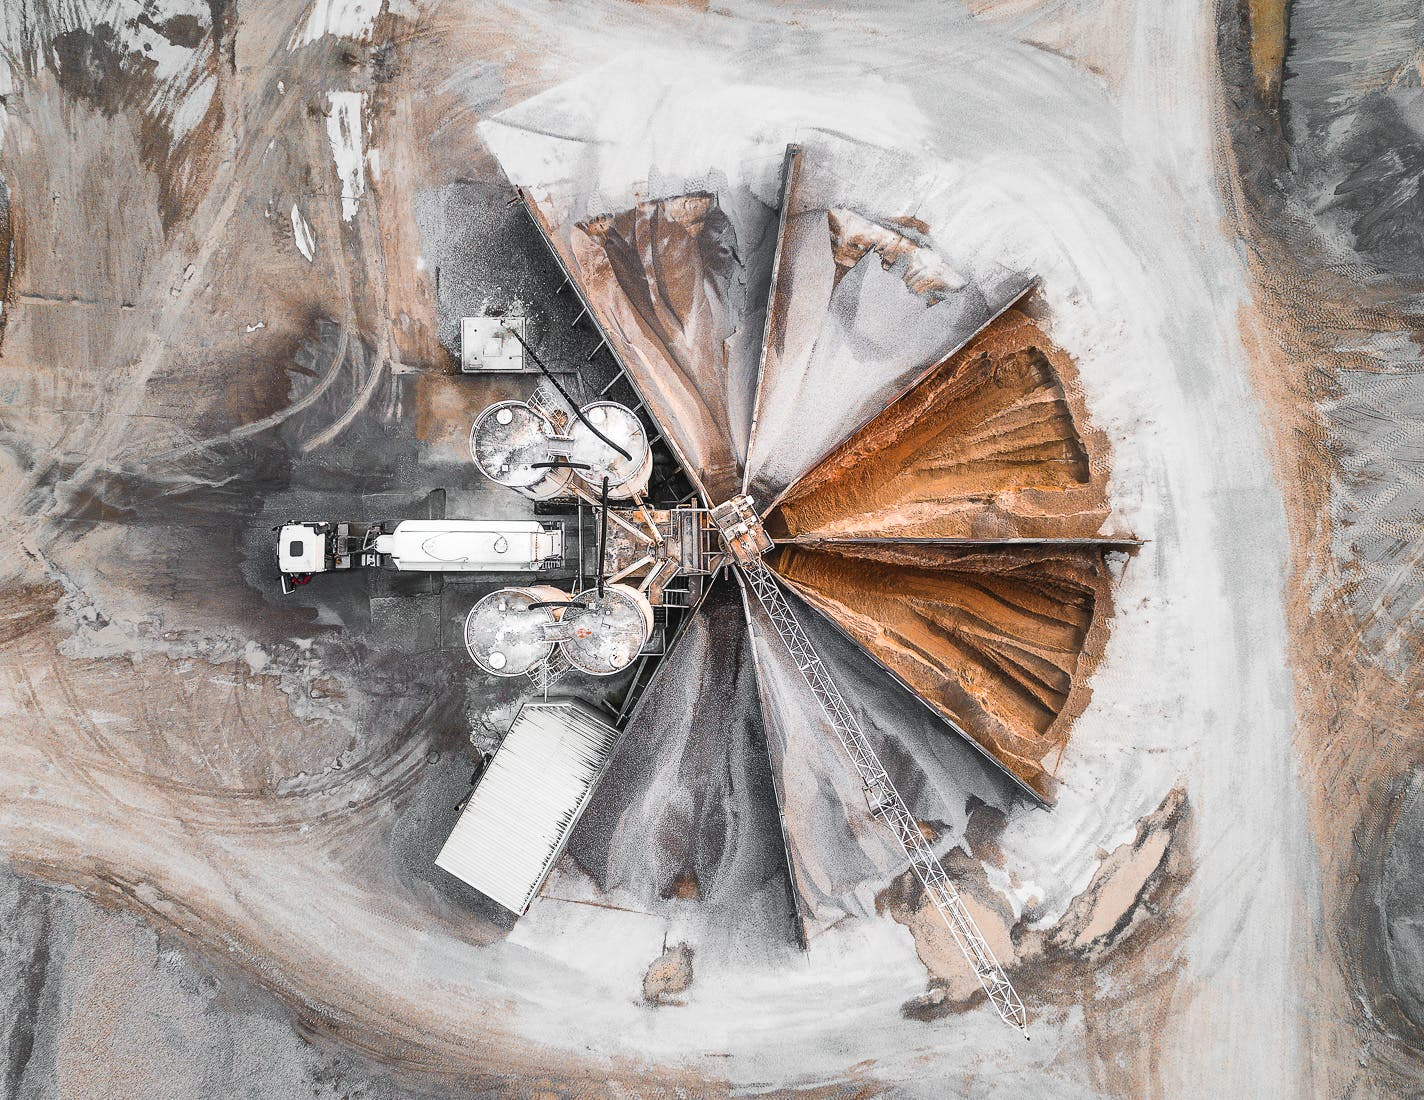 Quarries Resemble Abstract Artworks in Tom Hegen's Aerial Photography